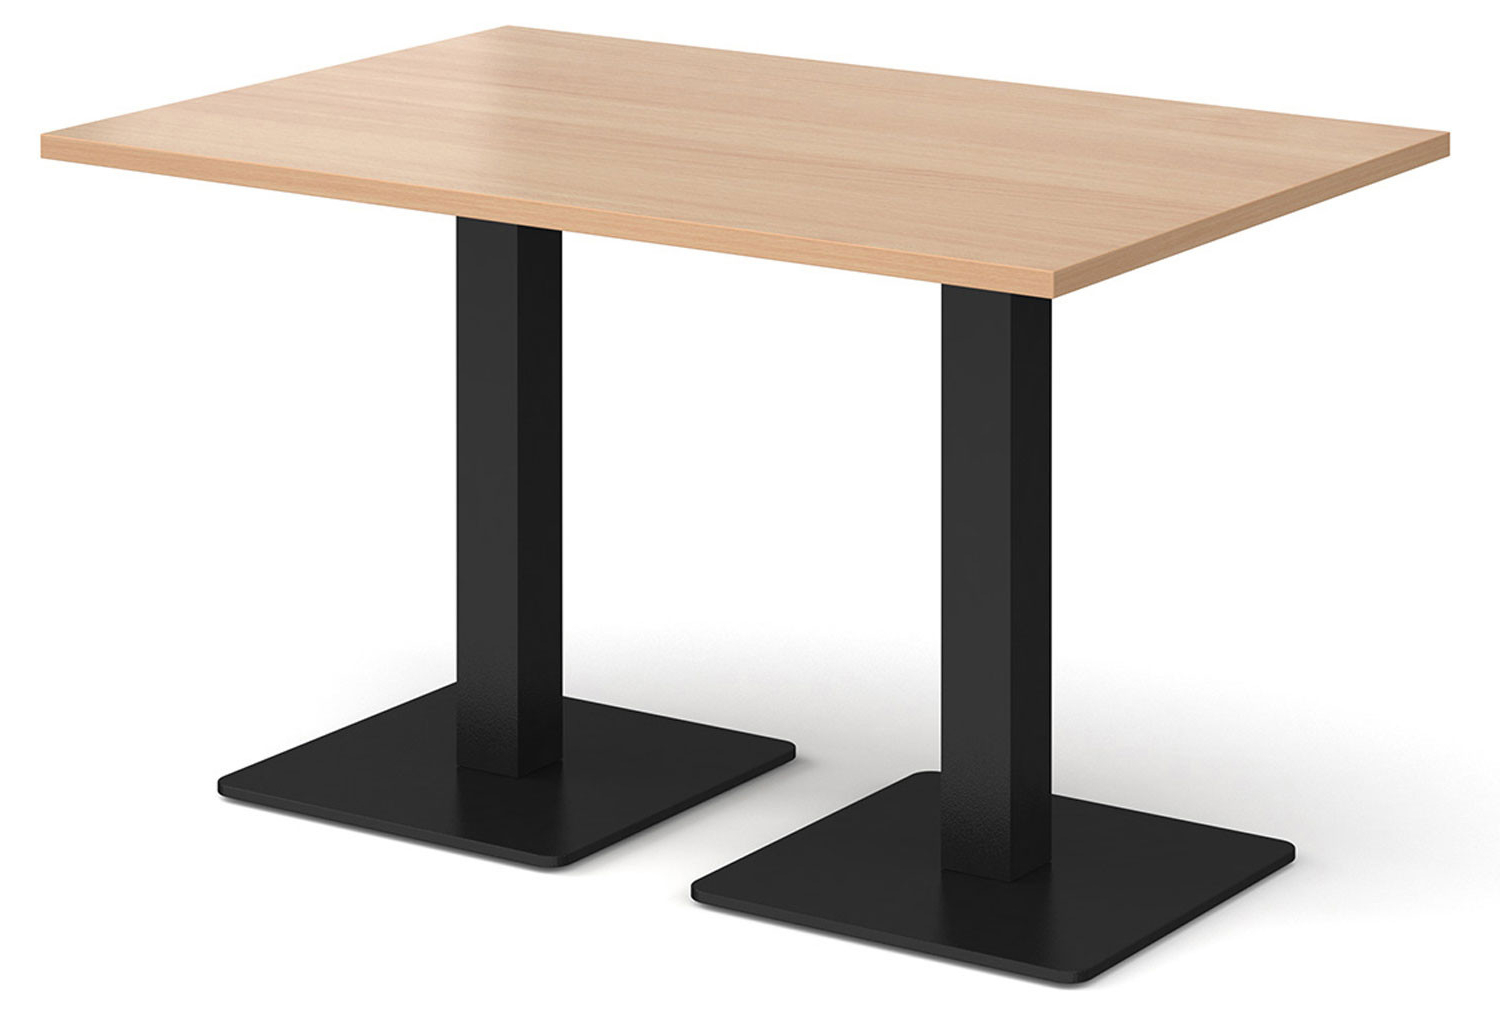 Rectangular Dining Tables Regarding Popular Erding Rectangular Dining Table (View 18 of 30)